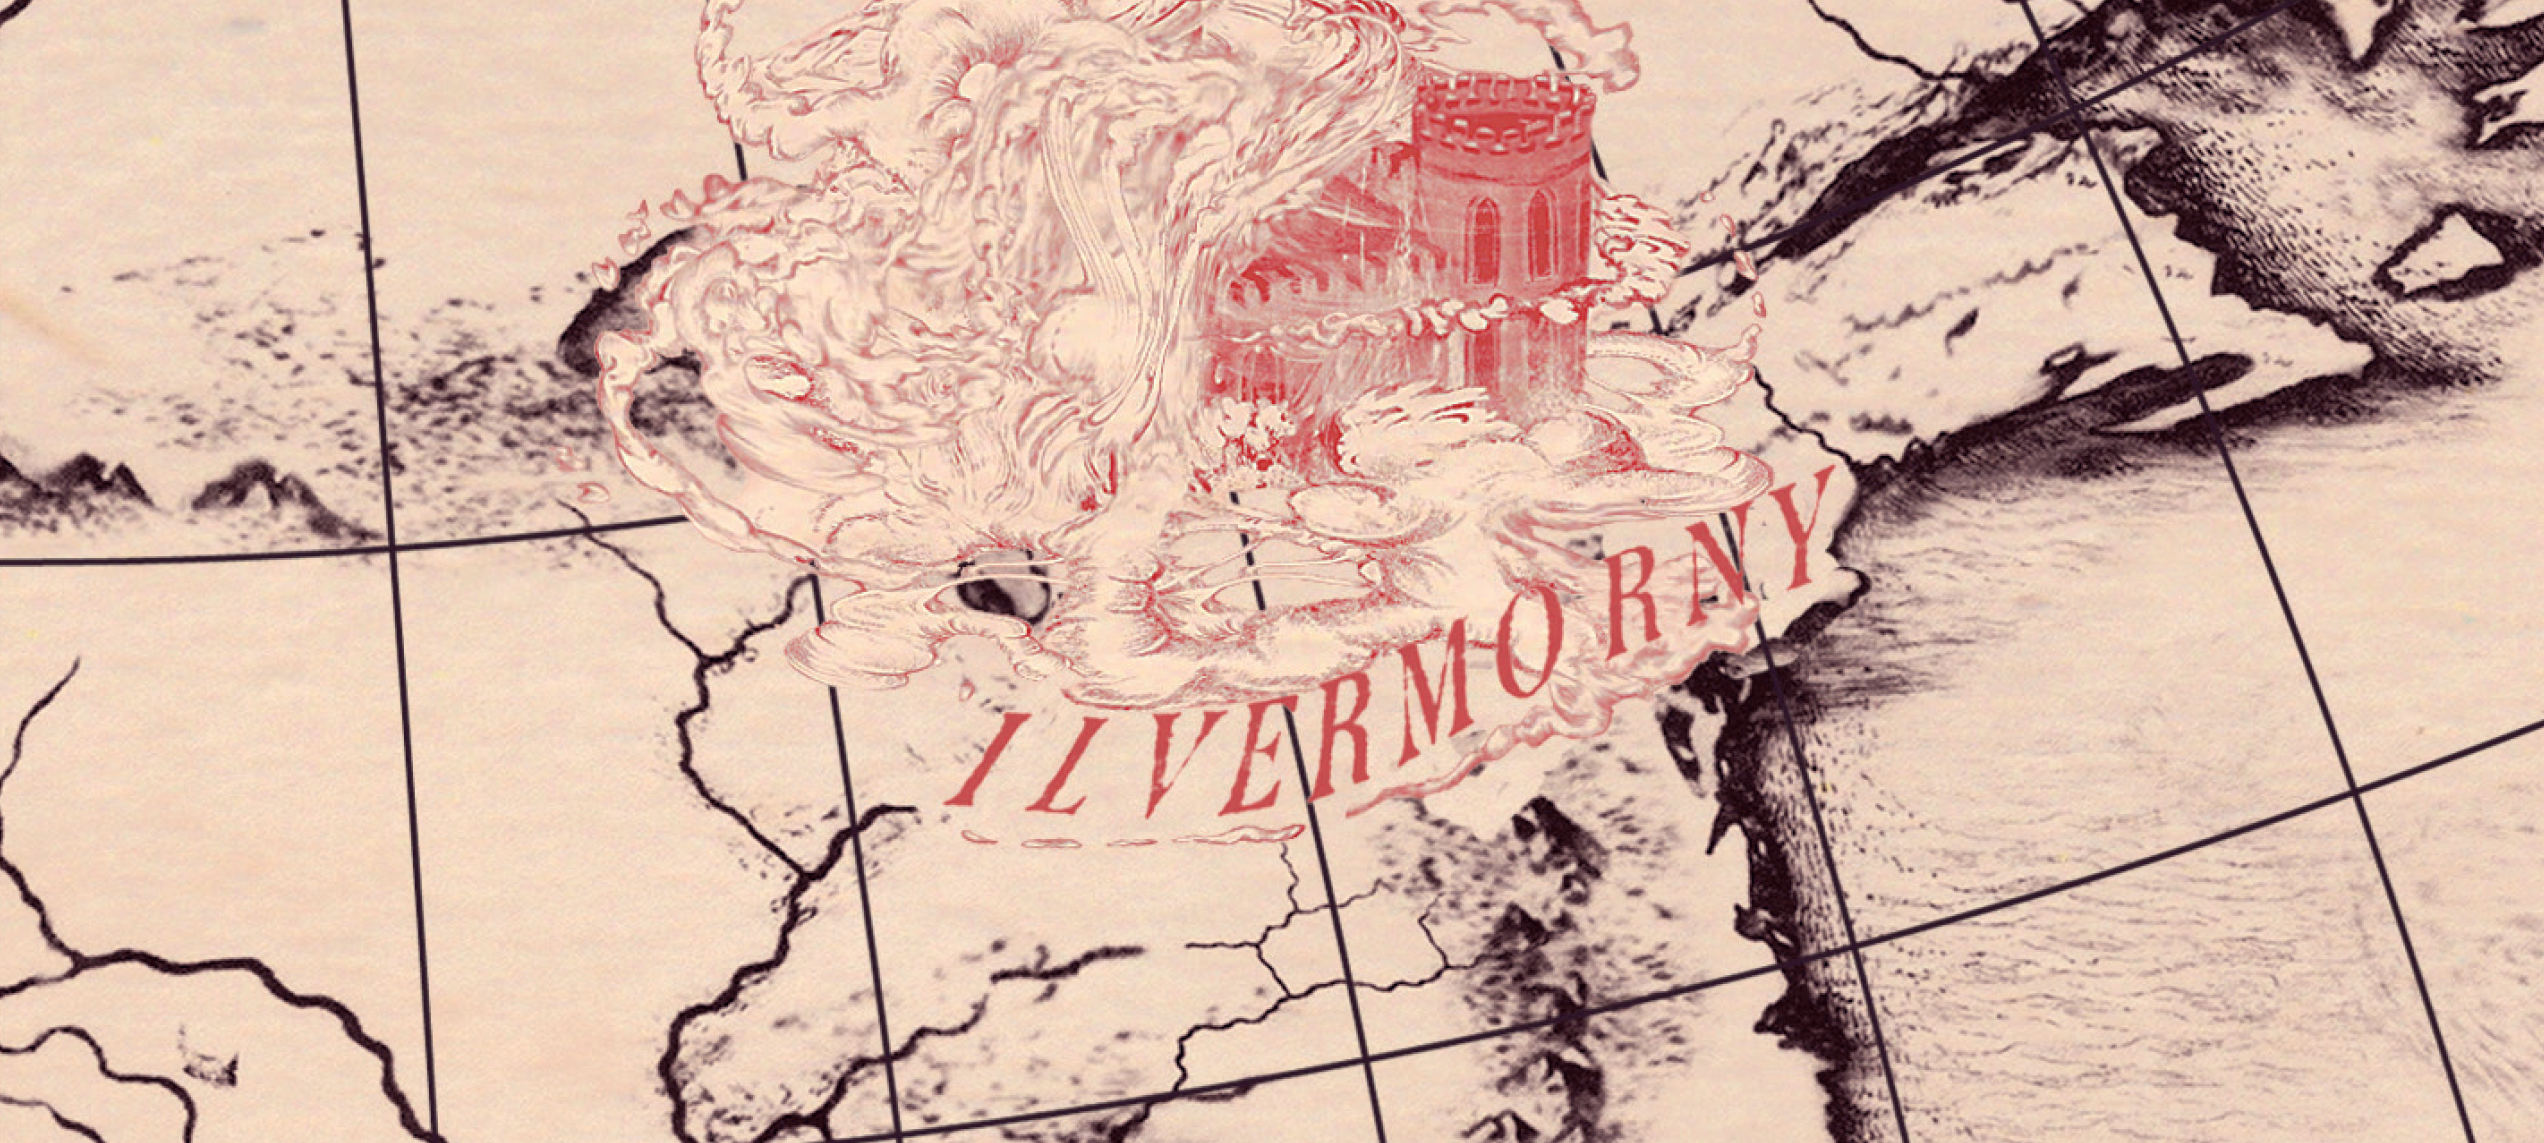 ilvermorny harry potter map sarah kohl nerdy blogs